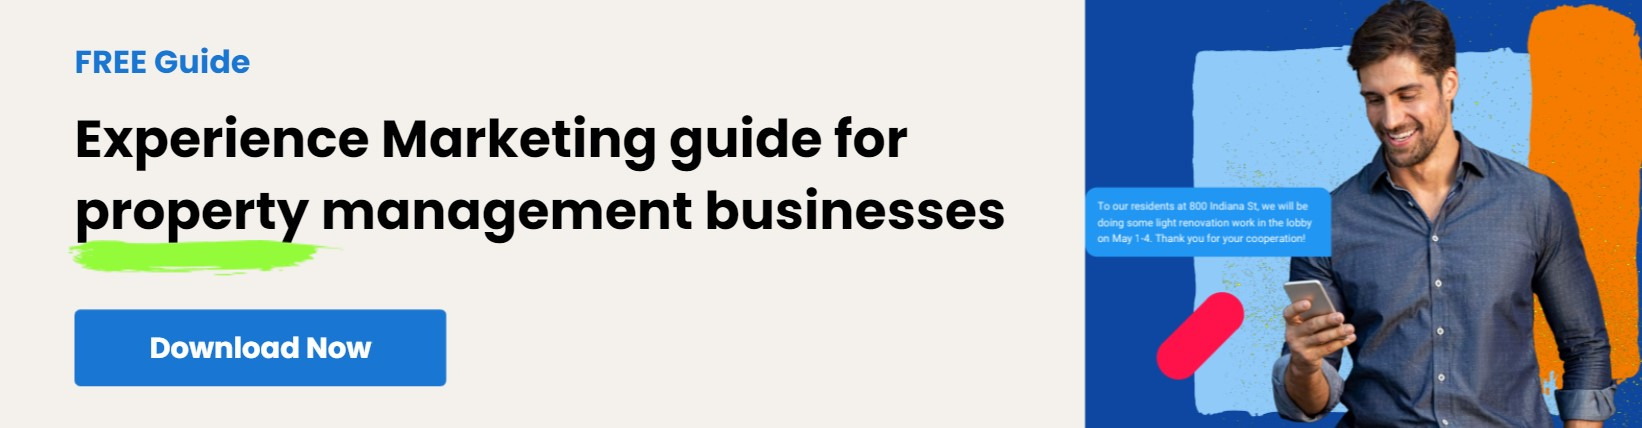 Guide to Experience Marketing for property management businesses